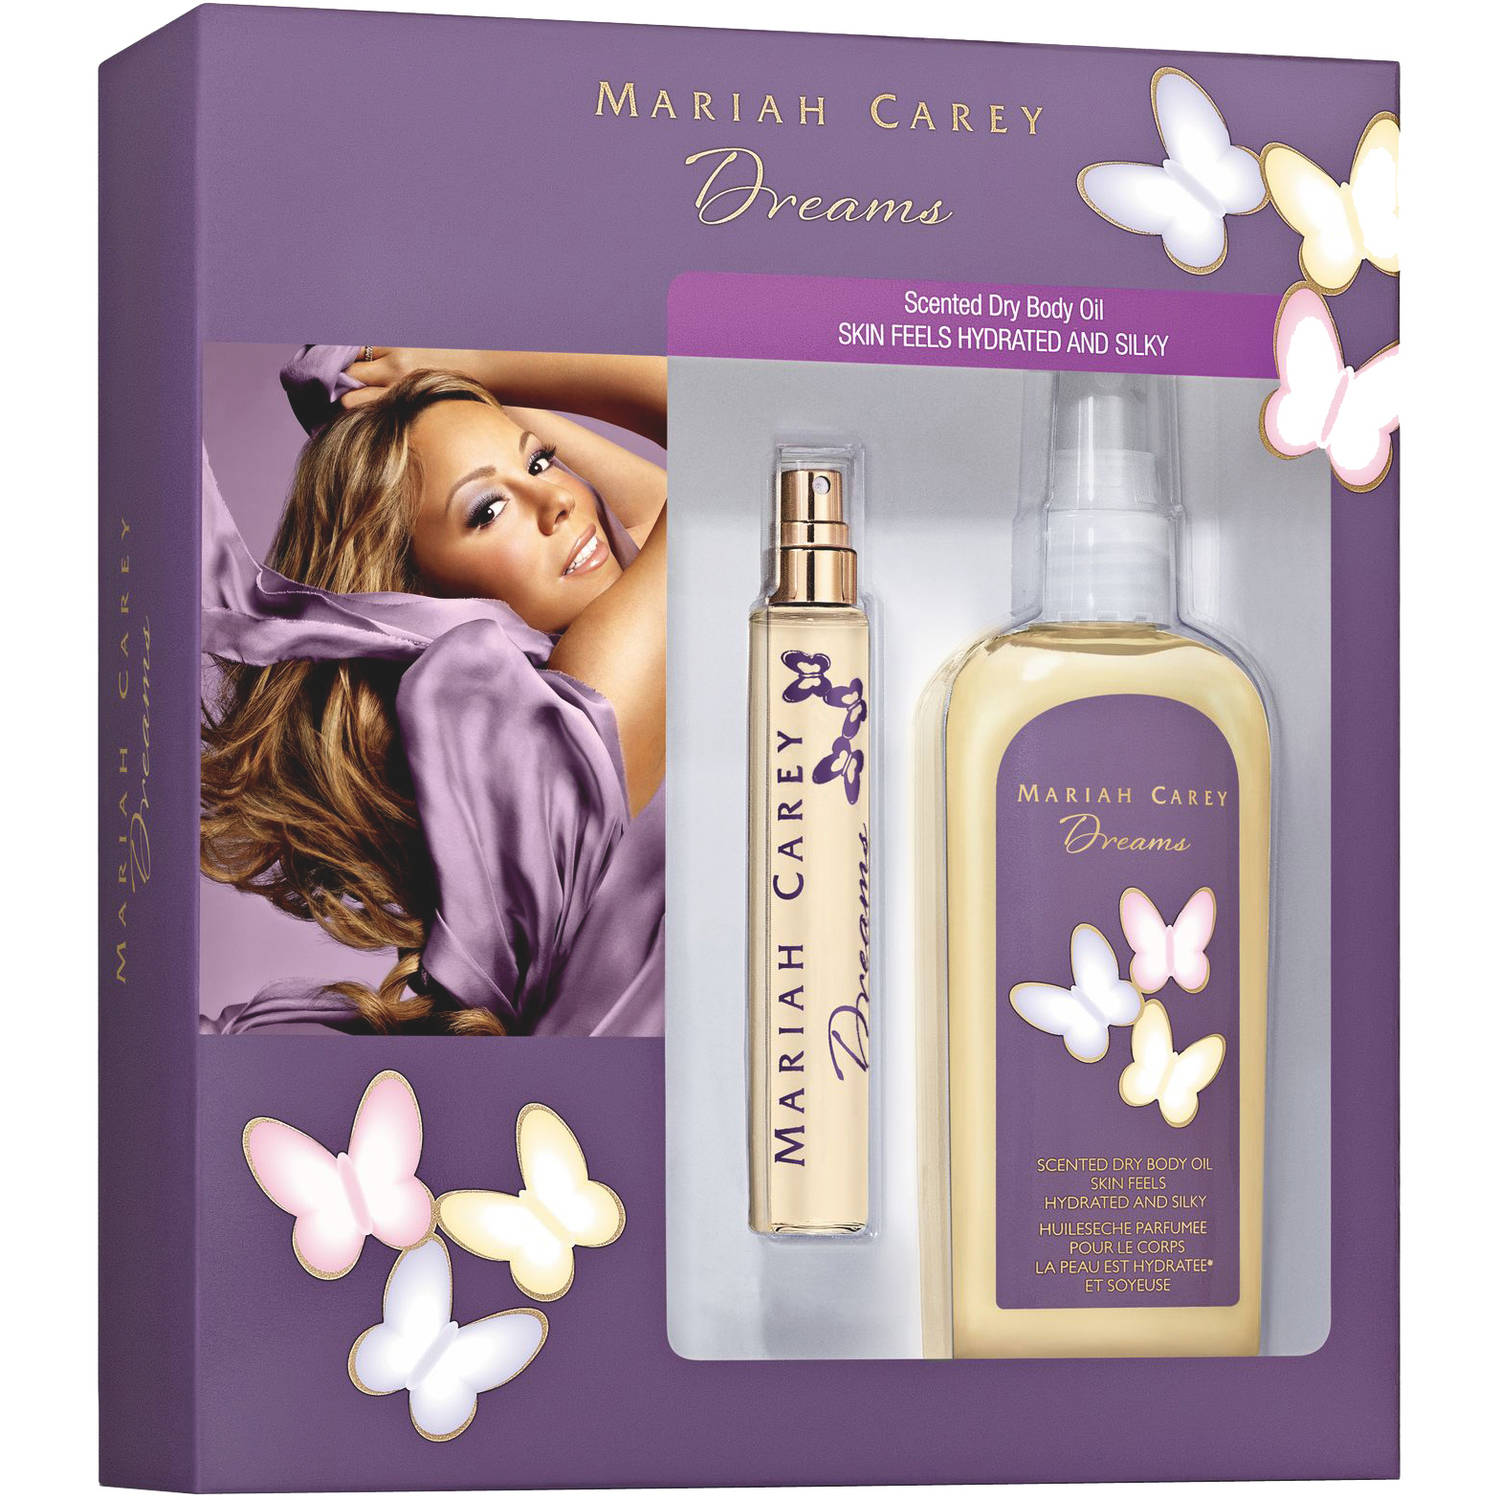 Mariah Carey Dreams Fragrance Gift Set, 2 pc